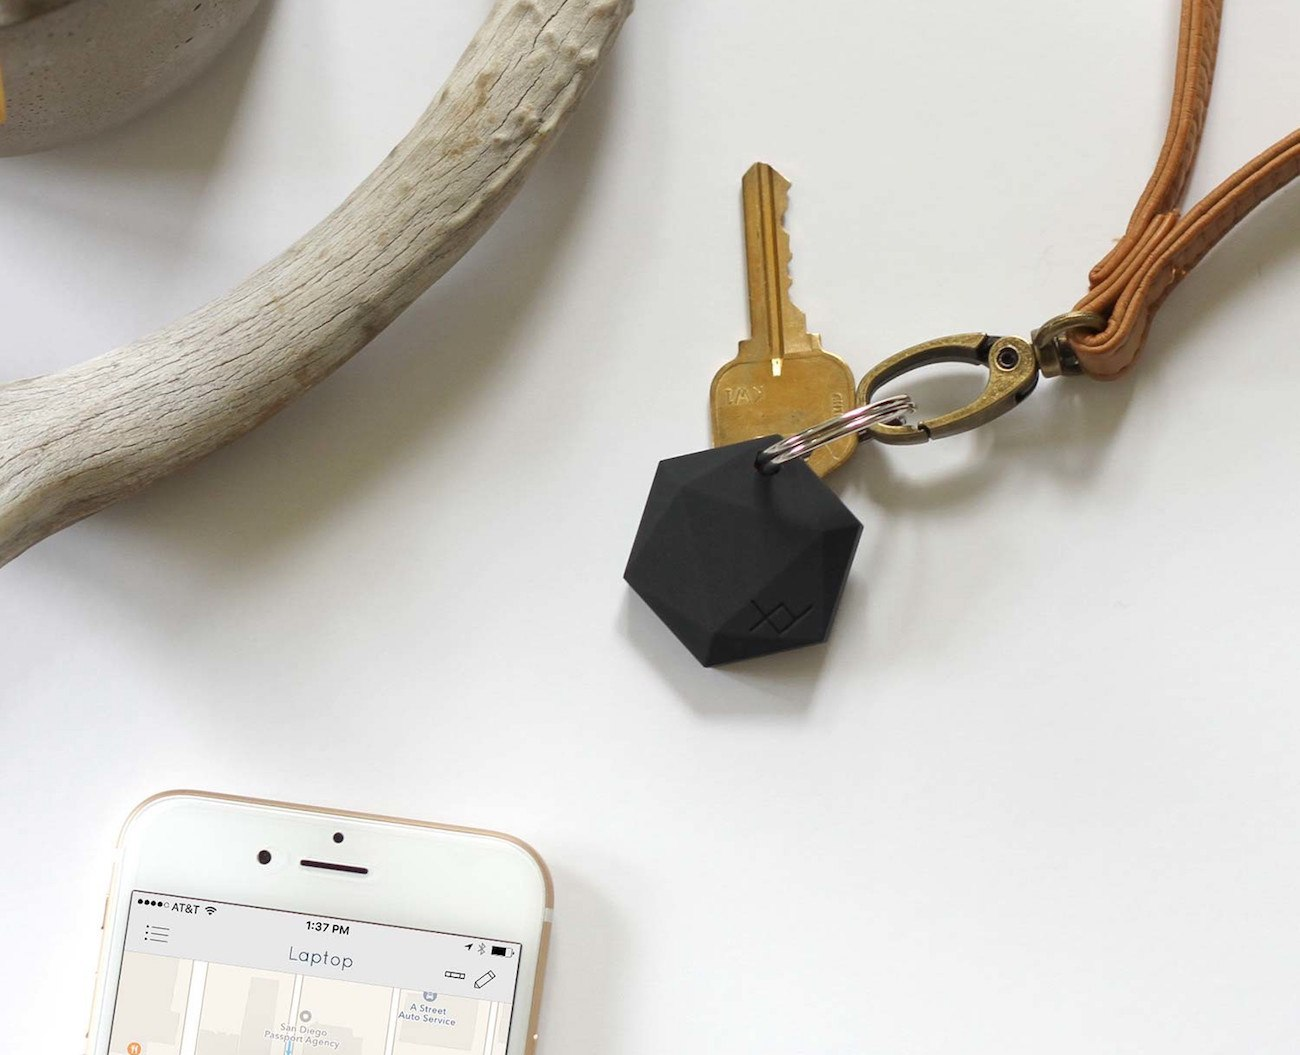 XY3 Bluetooth Item Finder